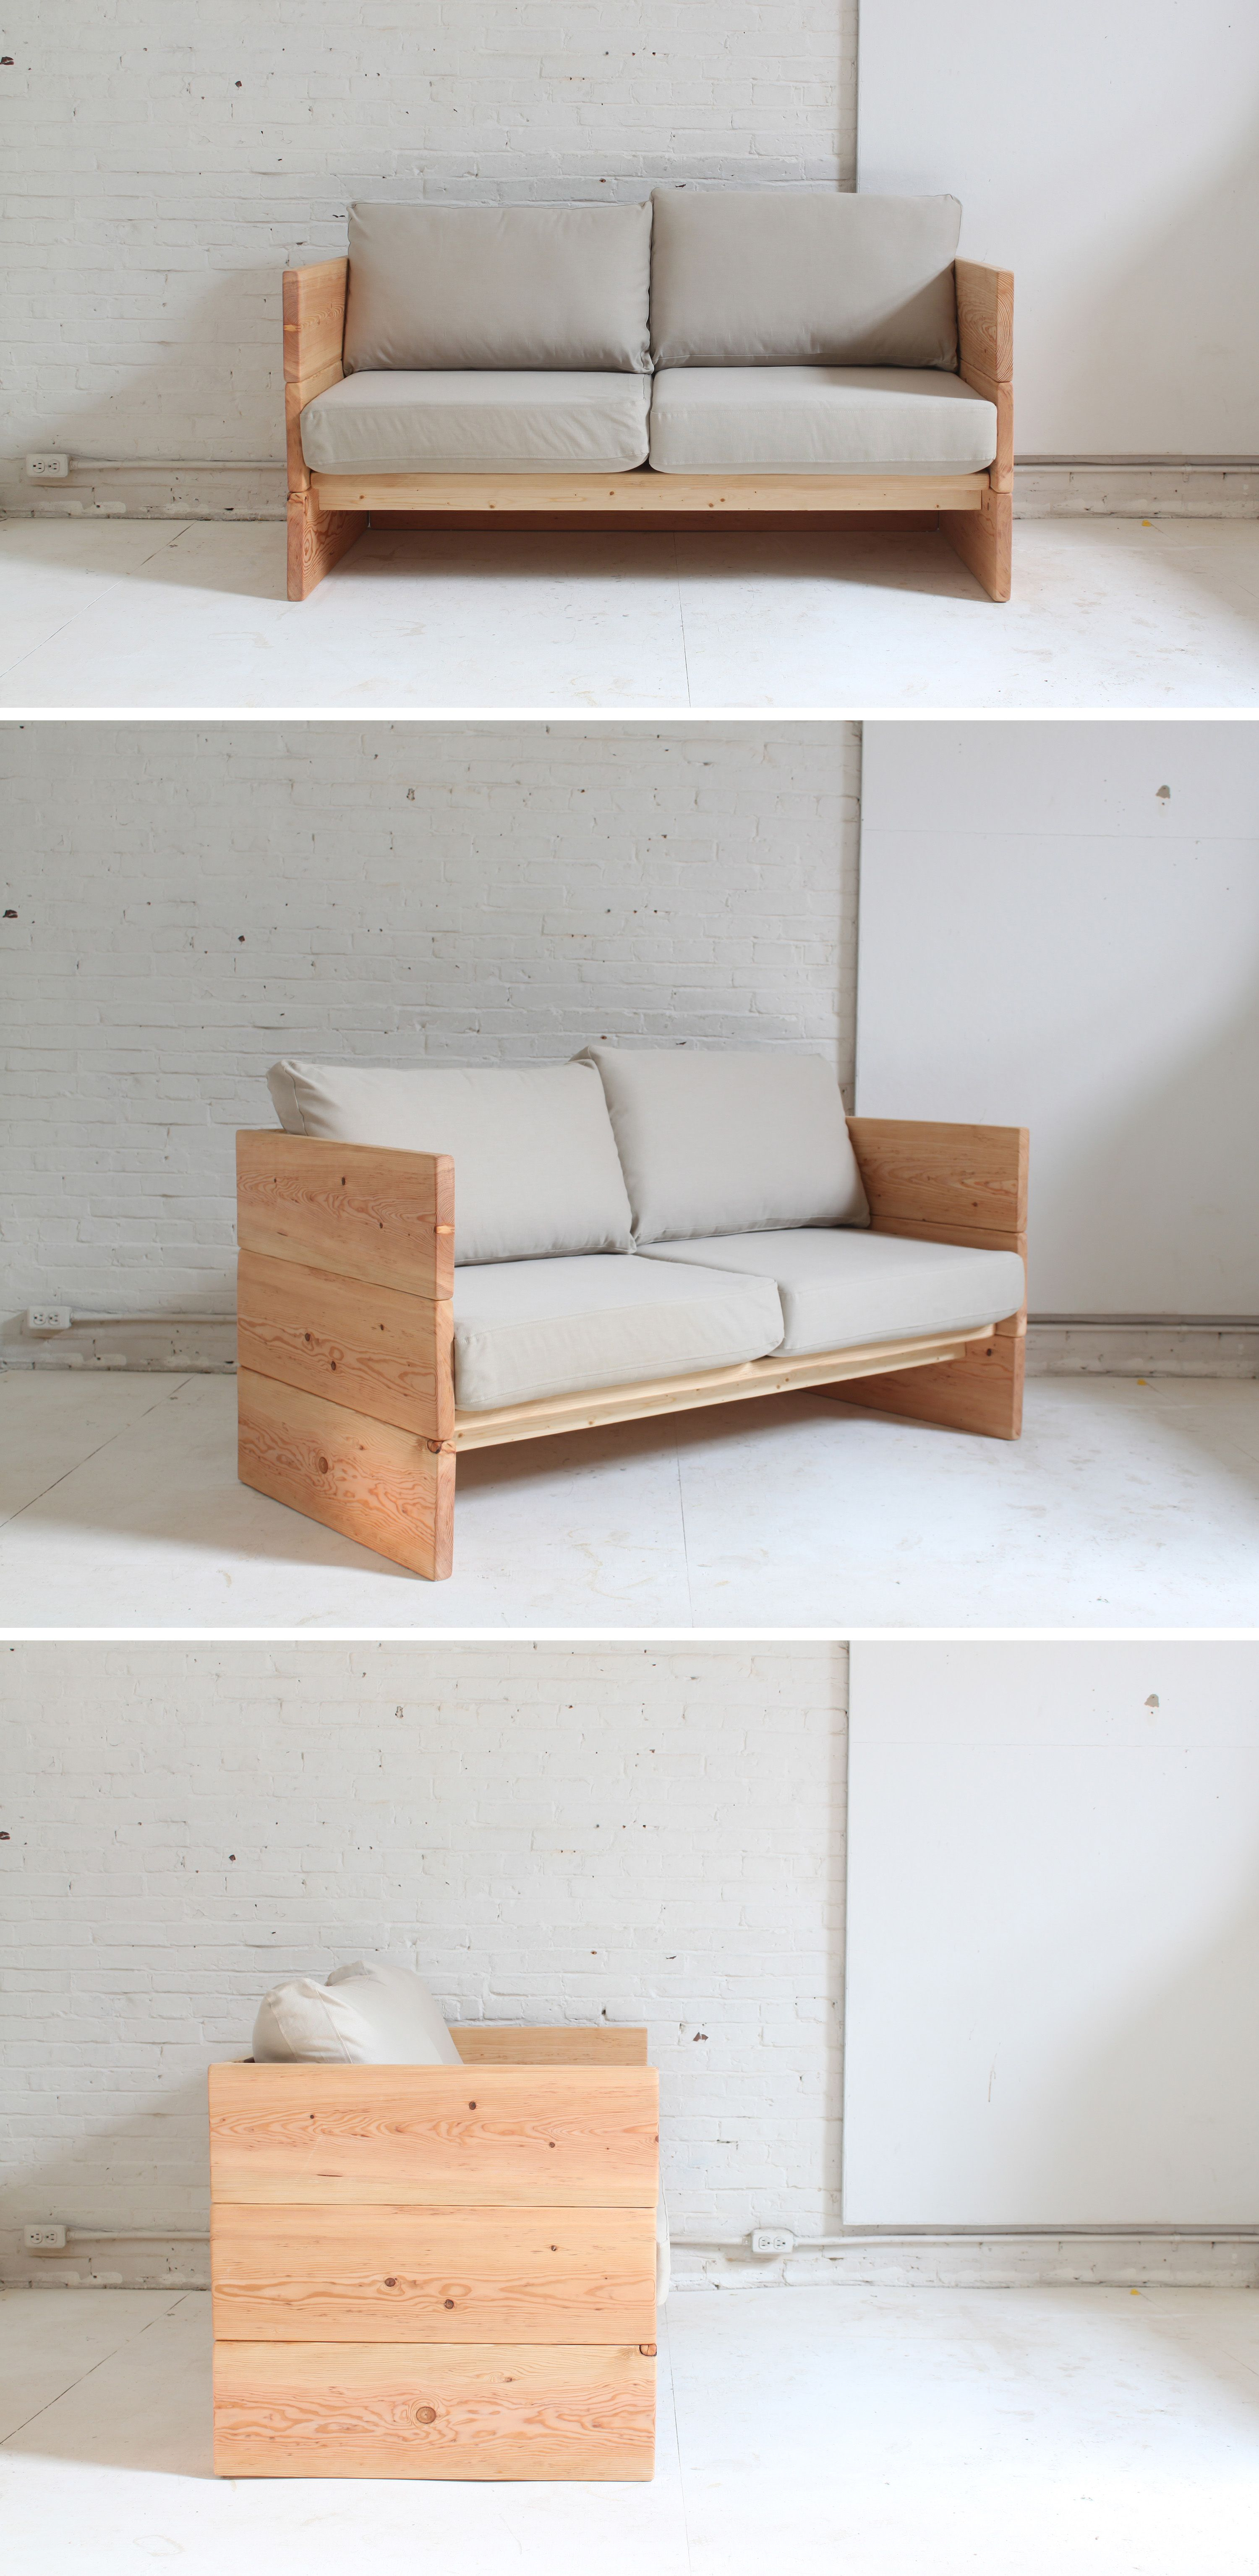 Sofas are one of the more expensive pieces of furniture for your